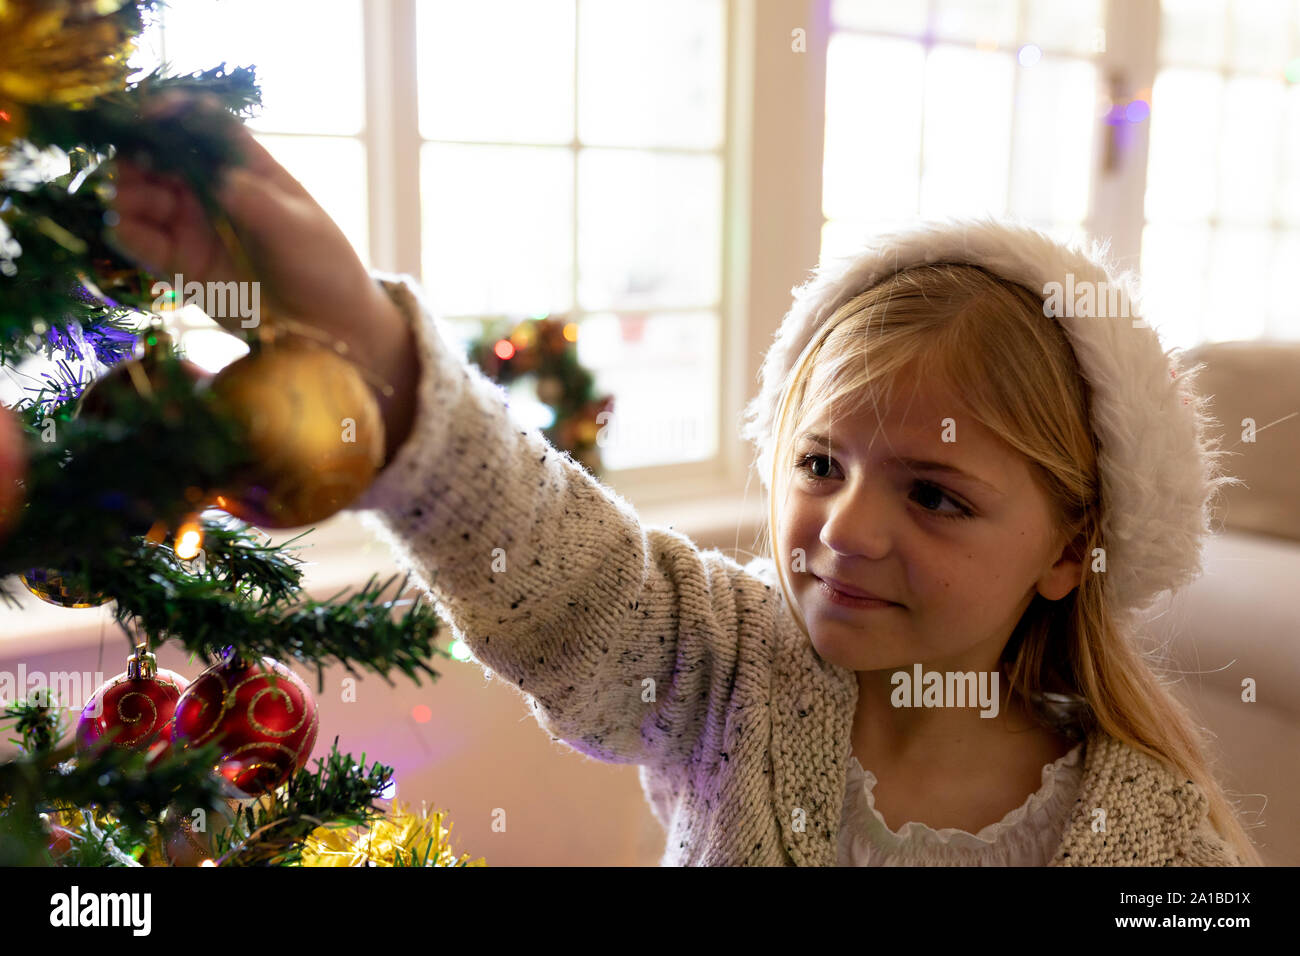 Girl decorating tree at Christmas time Stock Photo